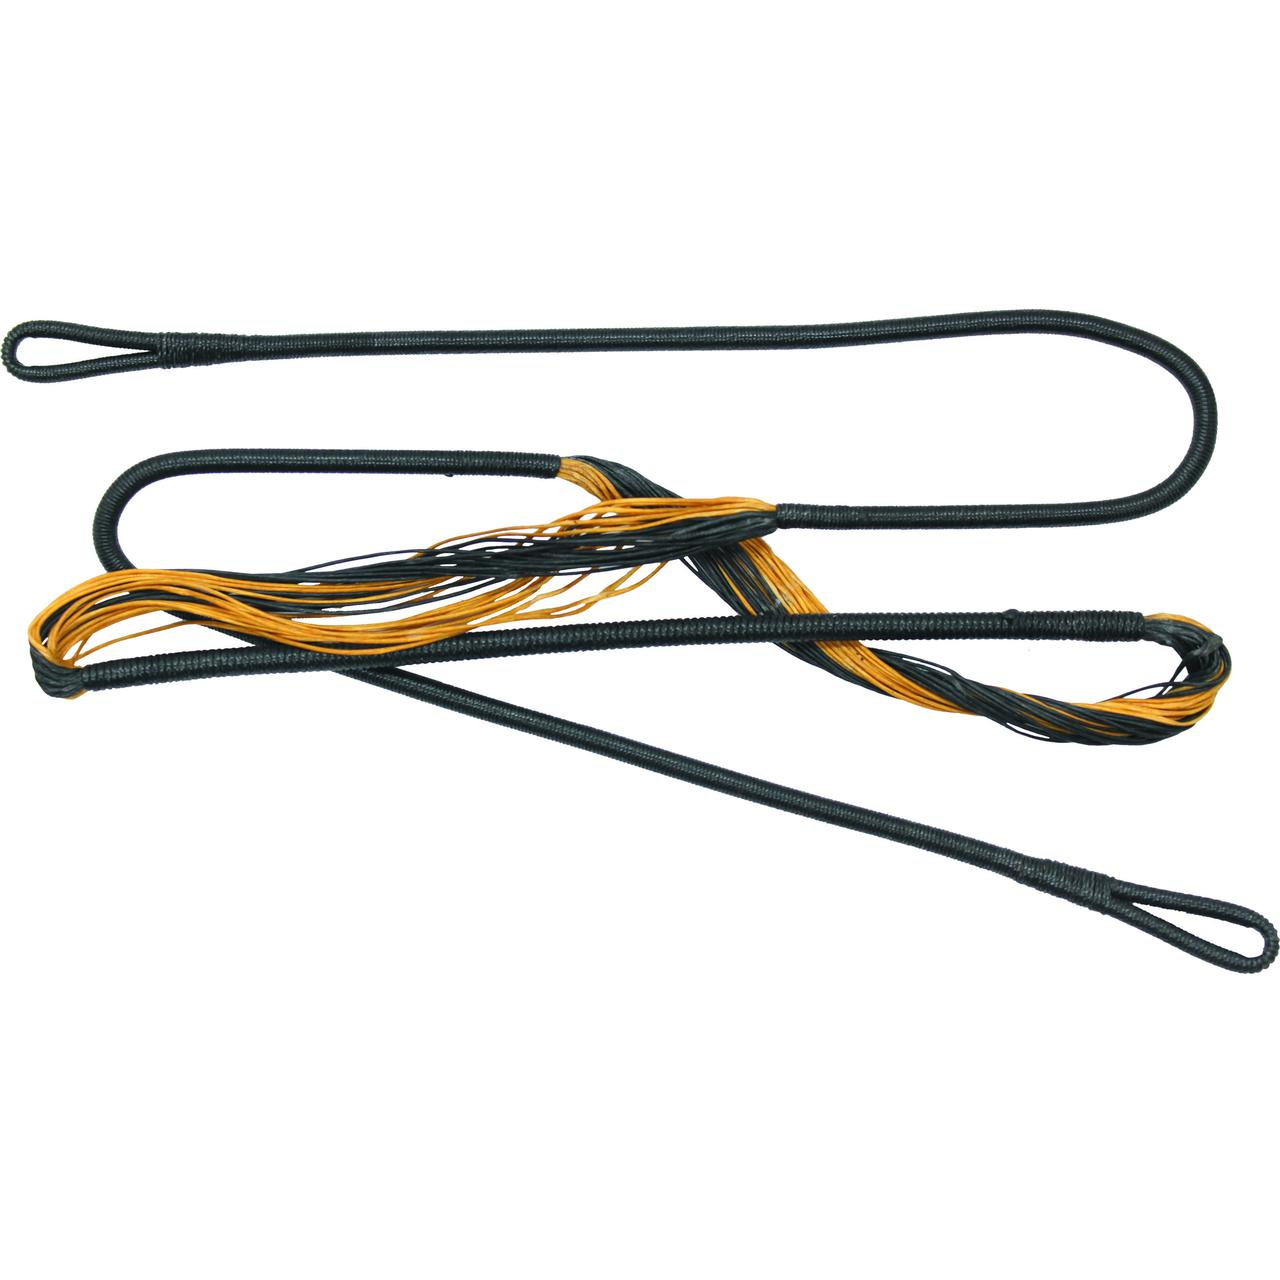 SAS Original Crossbow Replacement String - Please choose your model